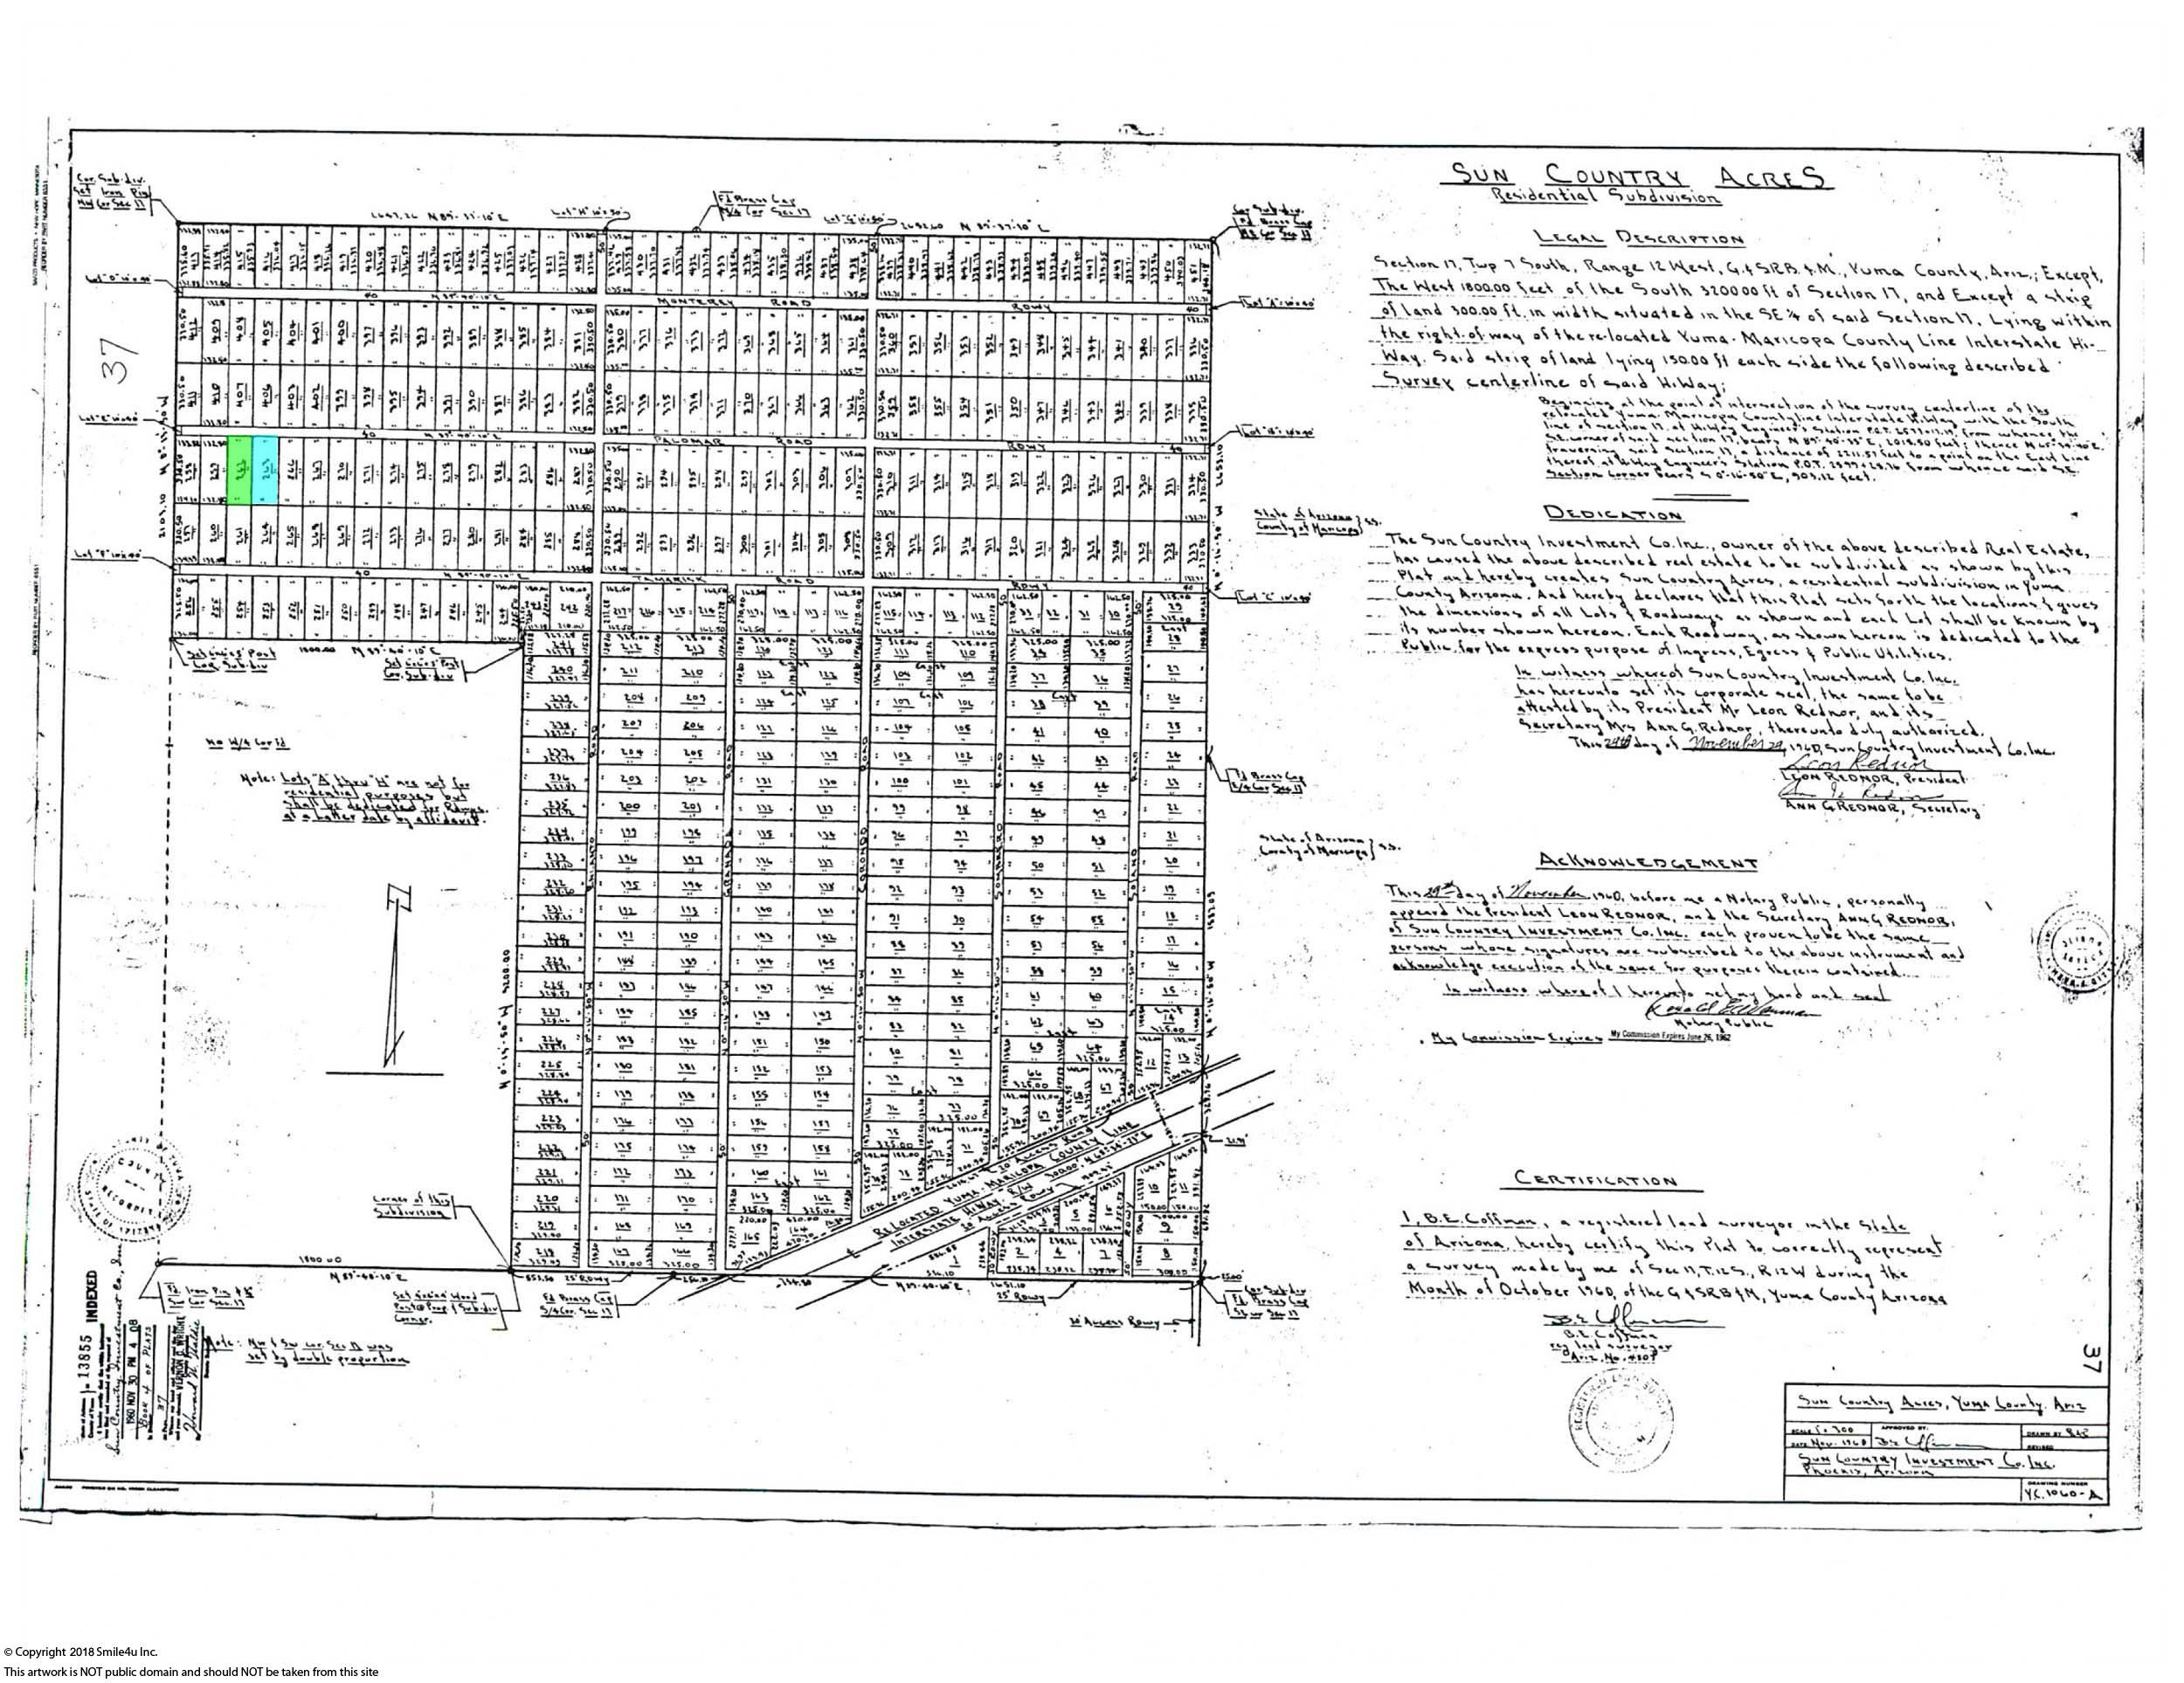 726313_watermarked_sun country acres amend parcel map.jpg